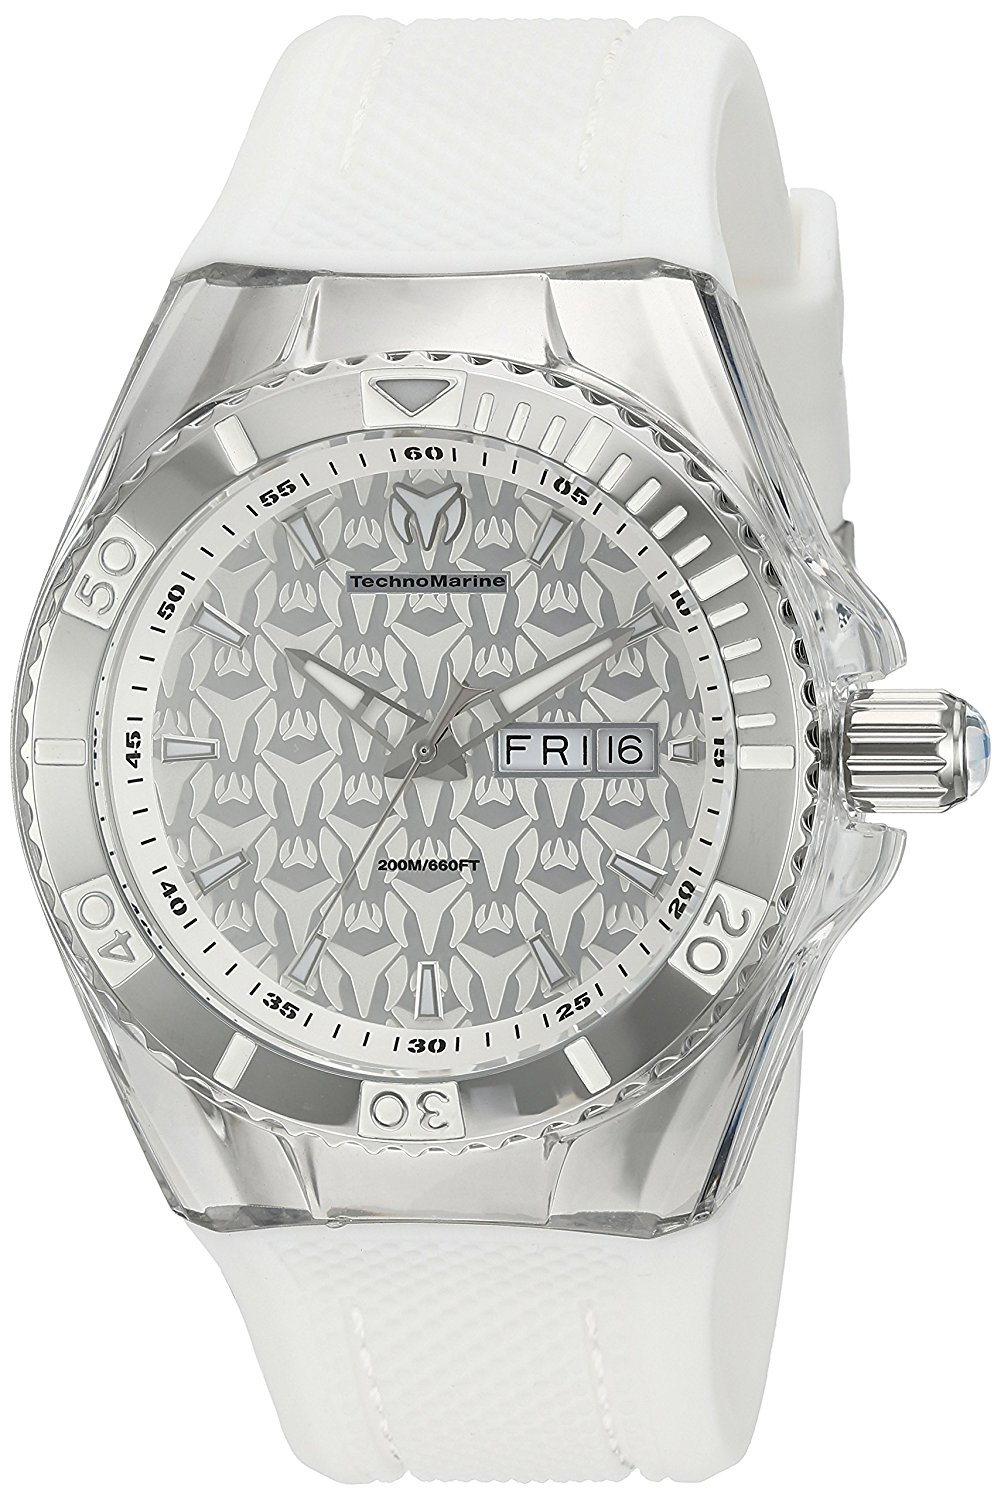 Technomarine Men's TM-115209 Cruise Monogram Analog Display Swiss Quartz White Watch